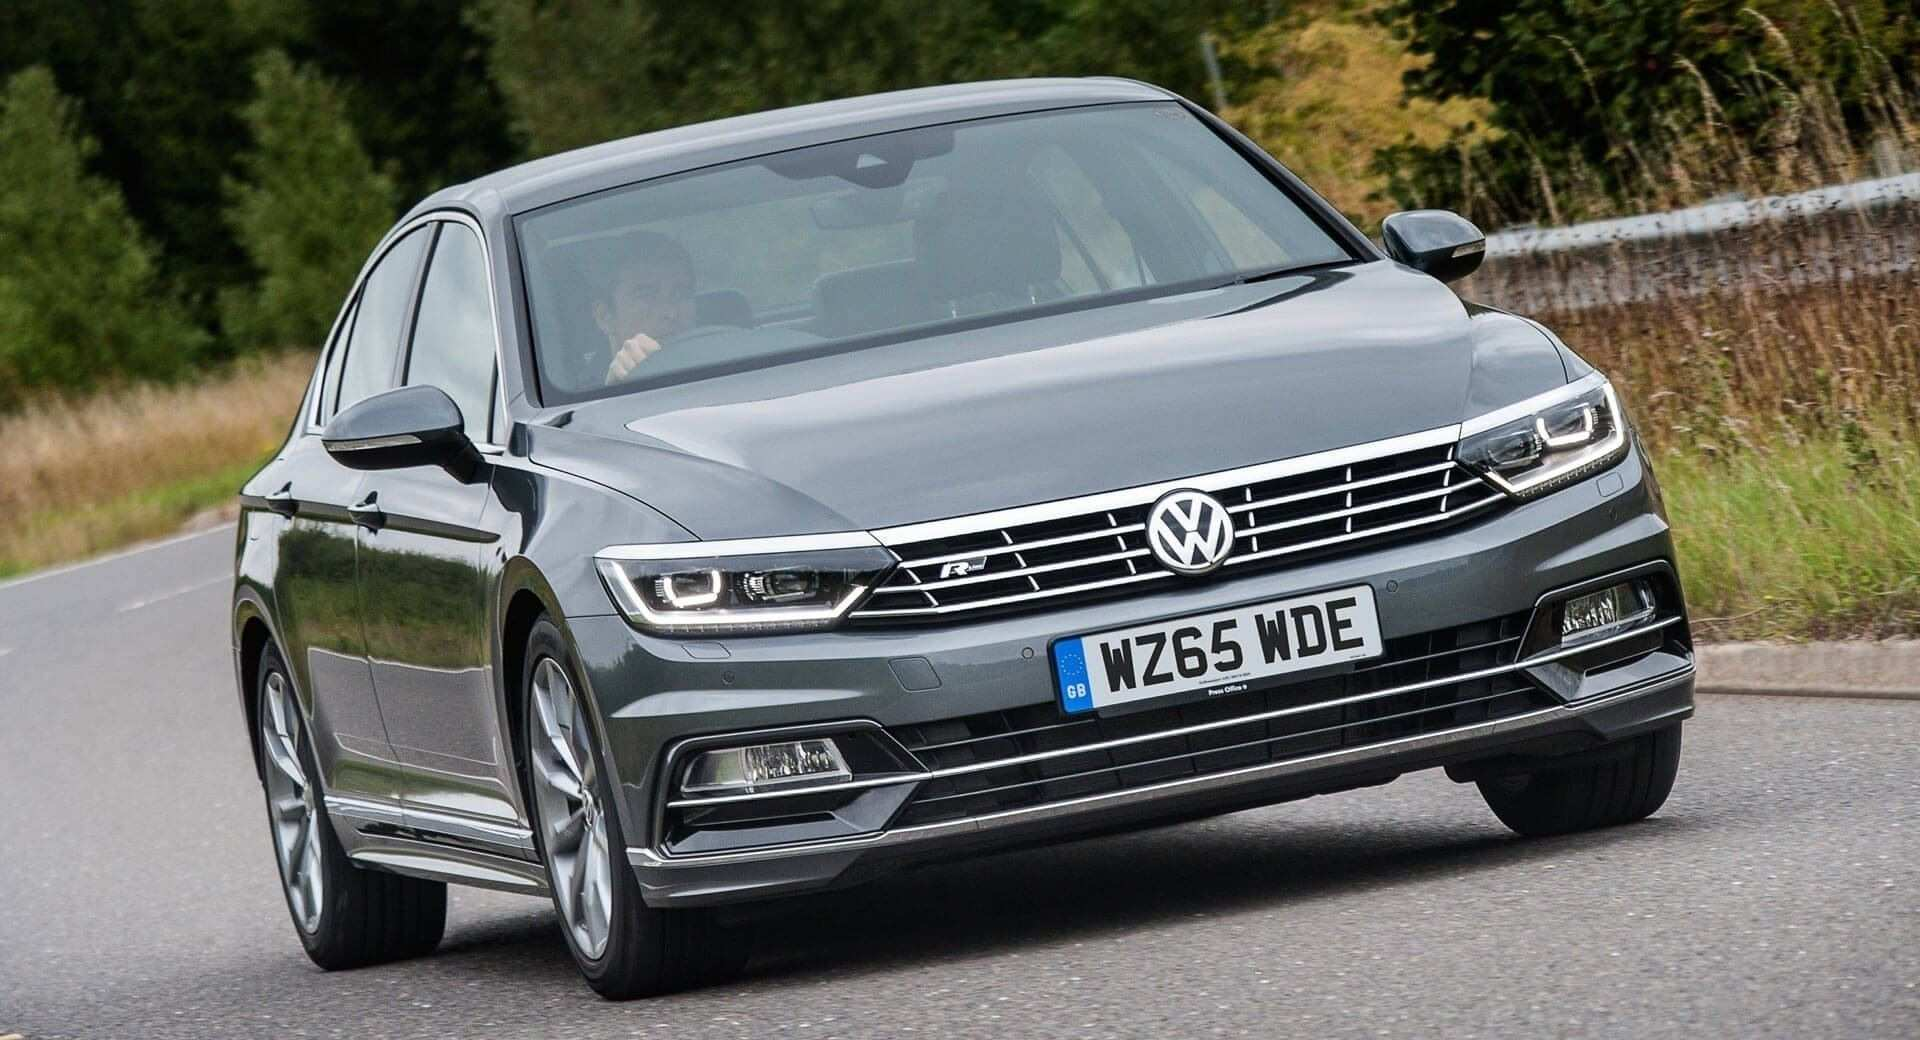 63 All New 2020 Volkswagen CC Model